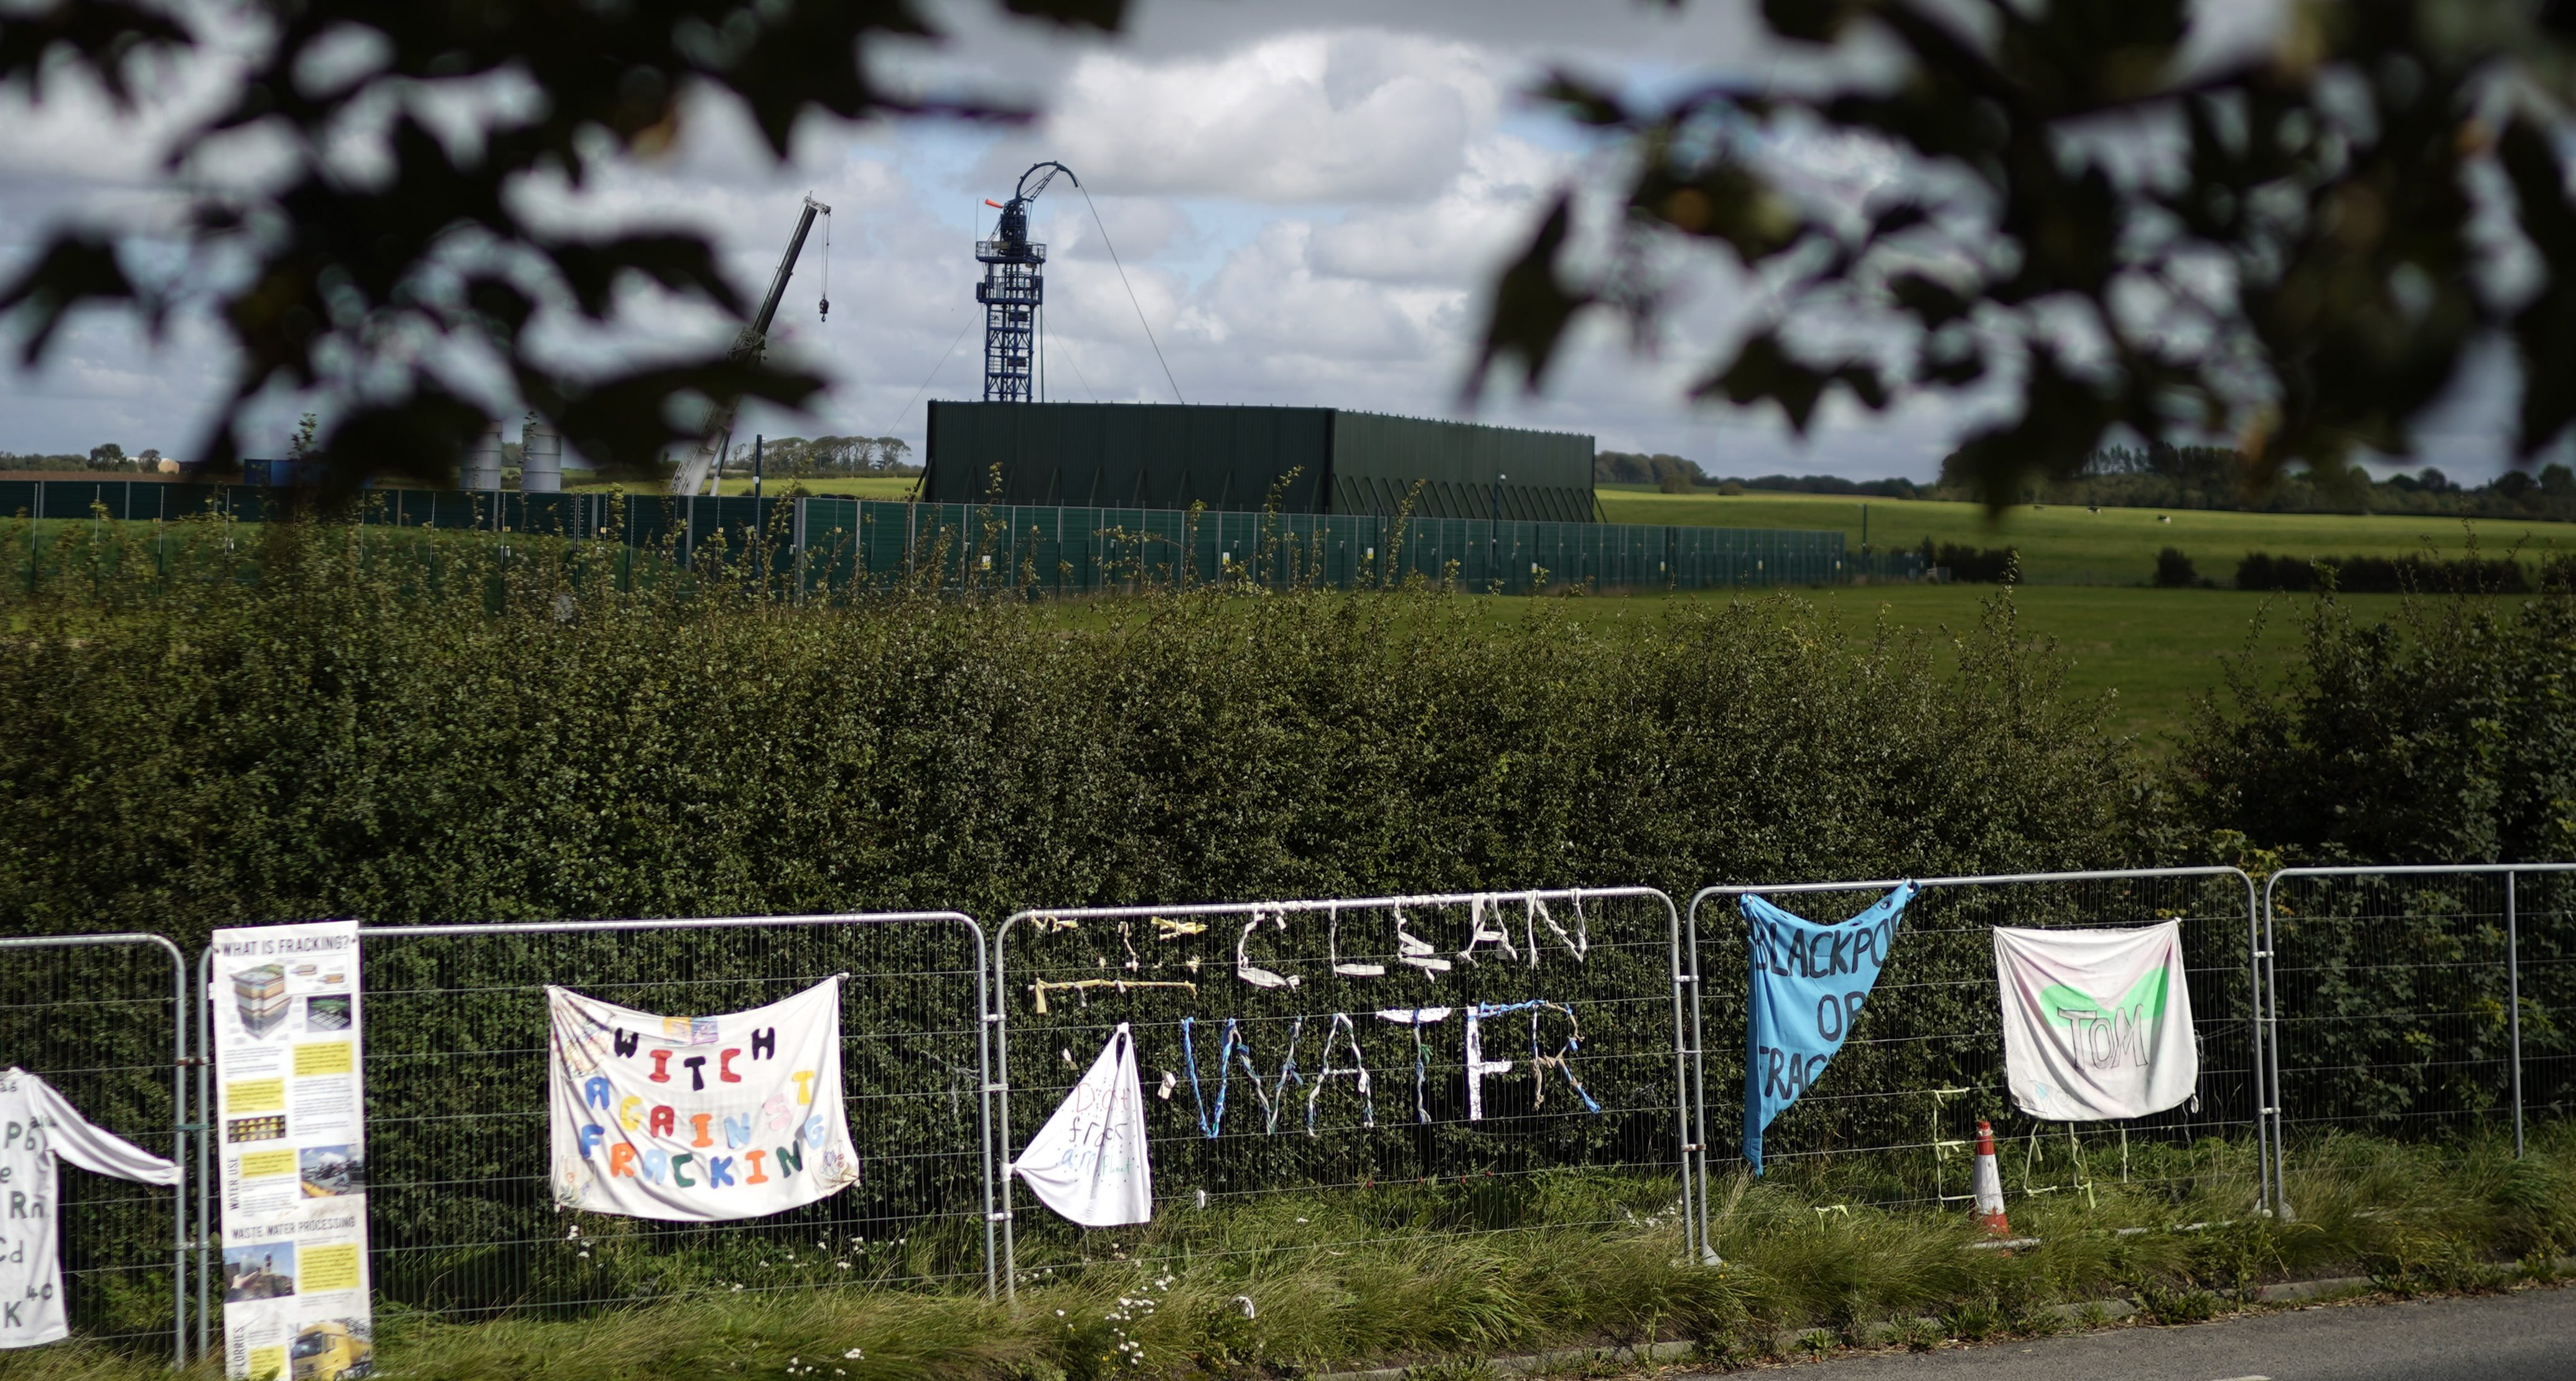 Were the celebrations about the end of fracking premature? Cuadrilla vows to apply for new permission - Country Life